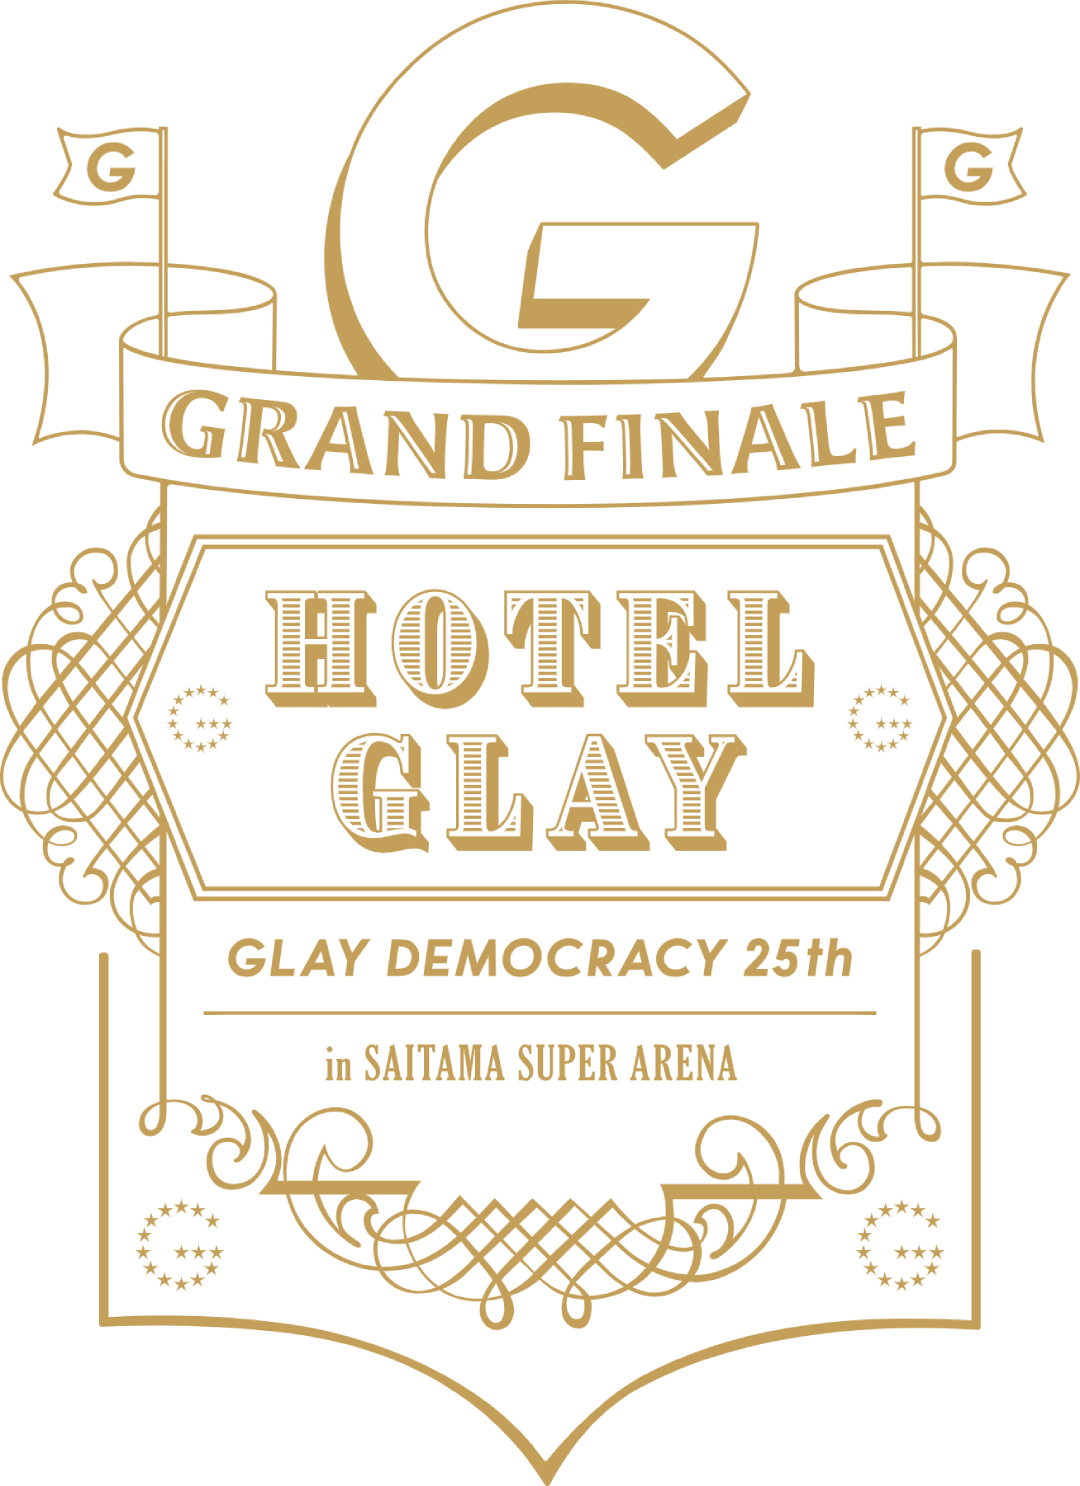 "GLAY DEMOCRACY 25TH ""HOTEL GLAY GRAND FINALE"" in SAITAMA SUPER ARENA GOODS"